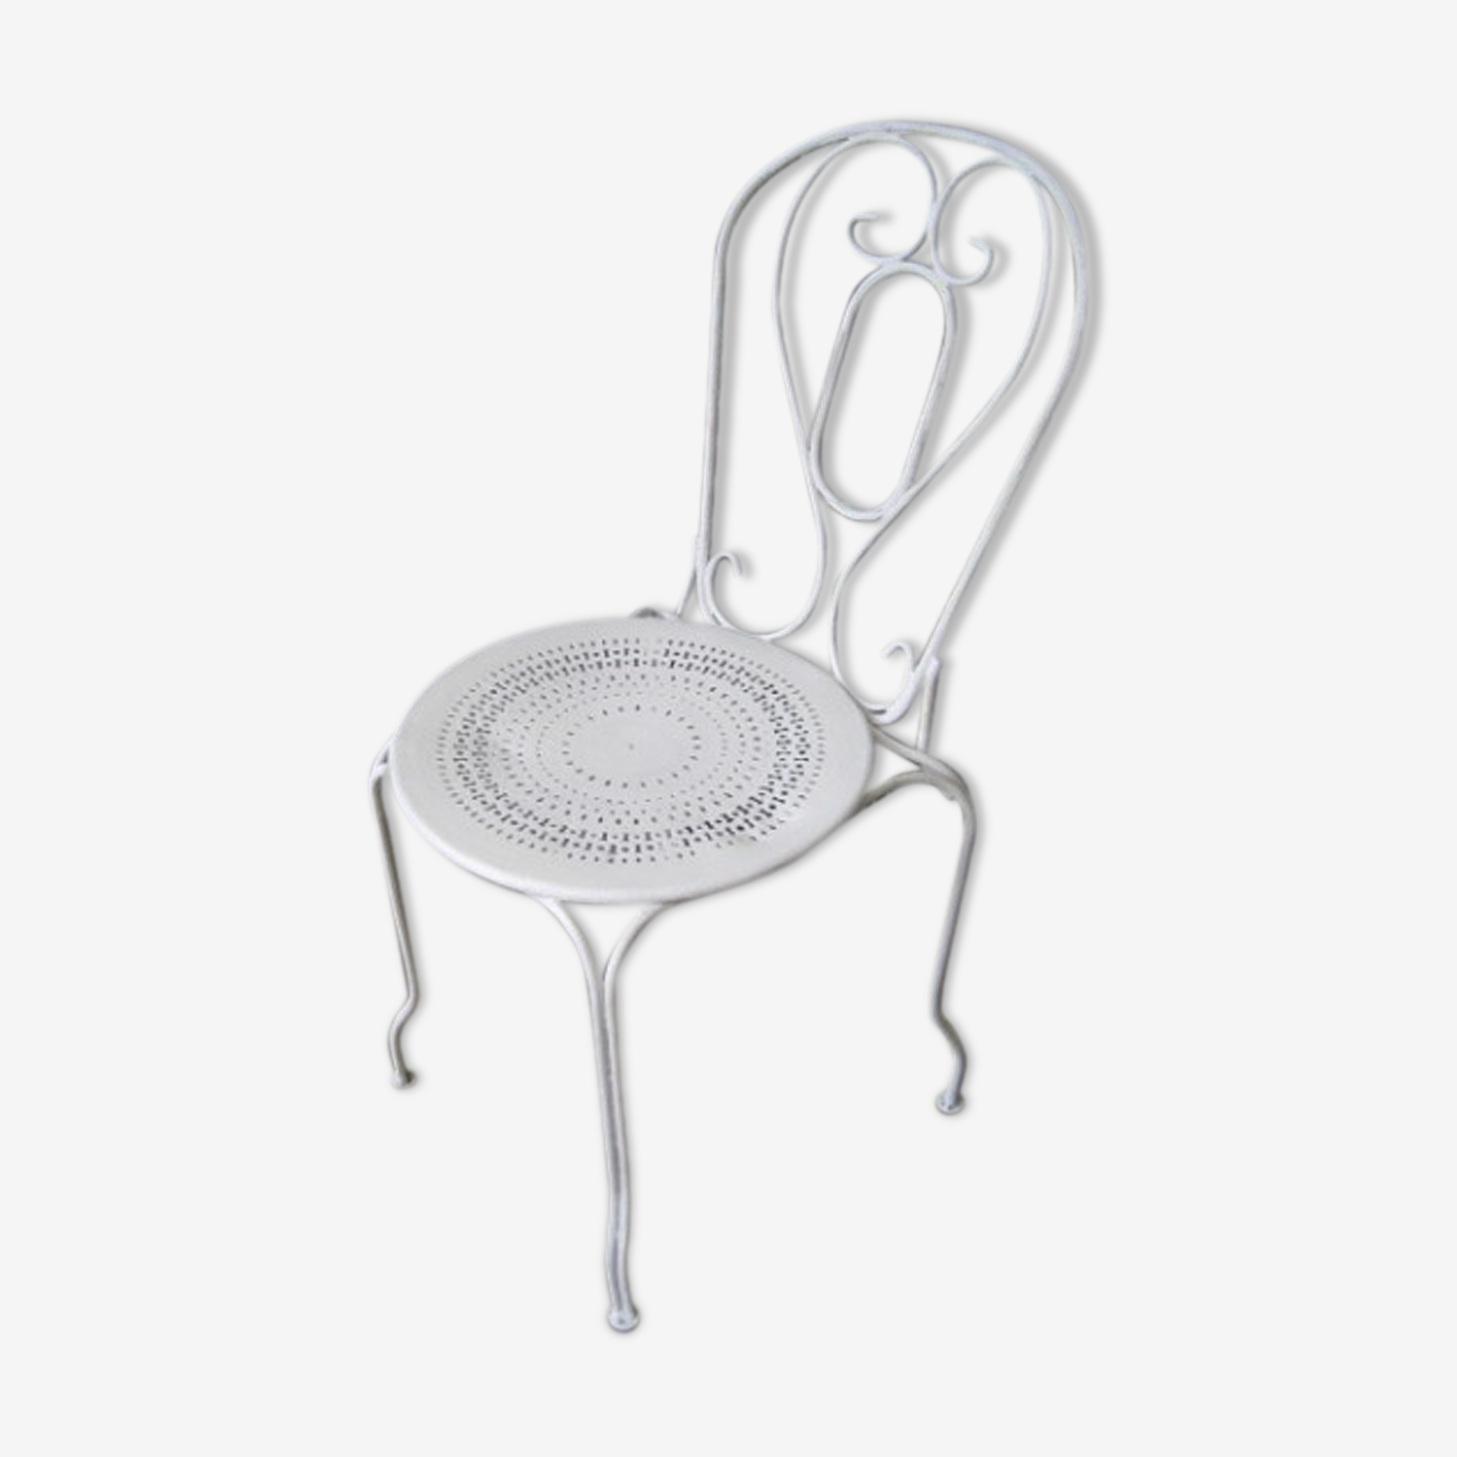 French garden steel chair